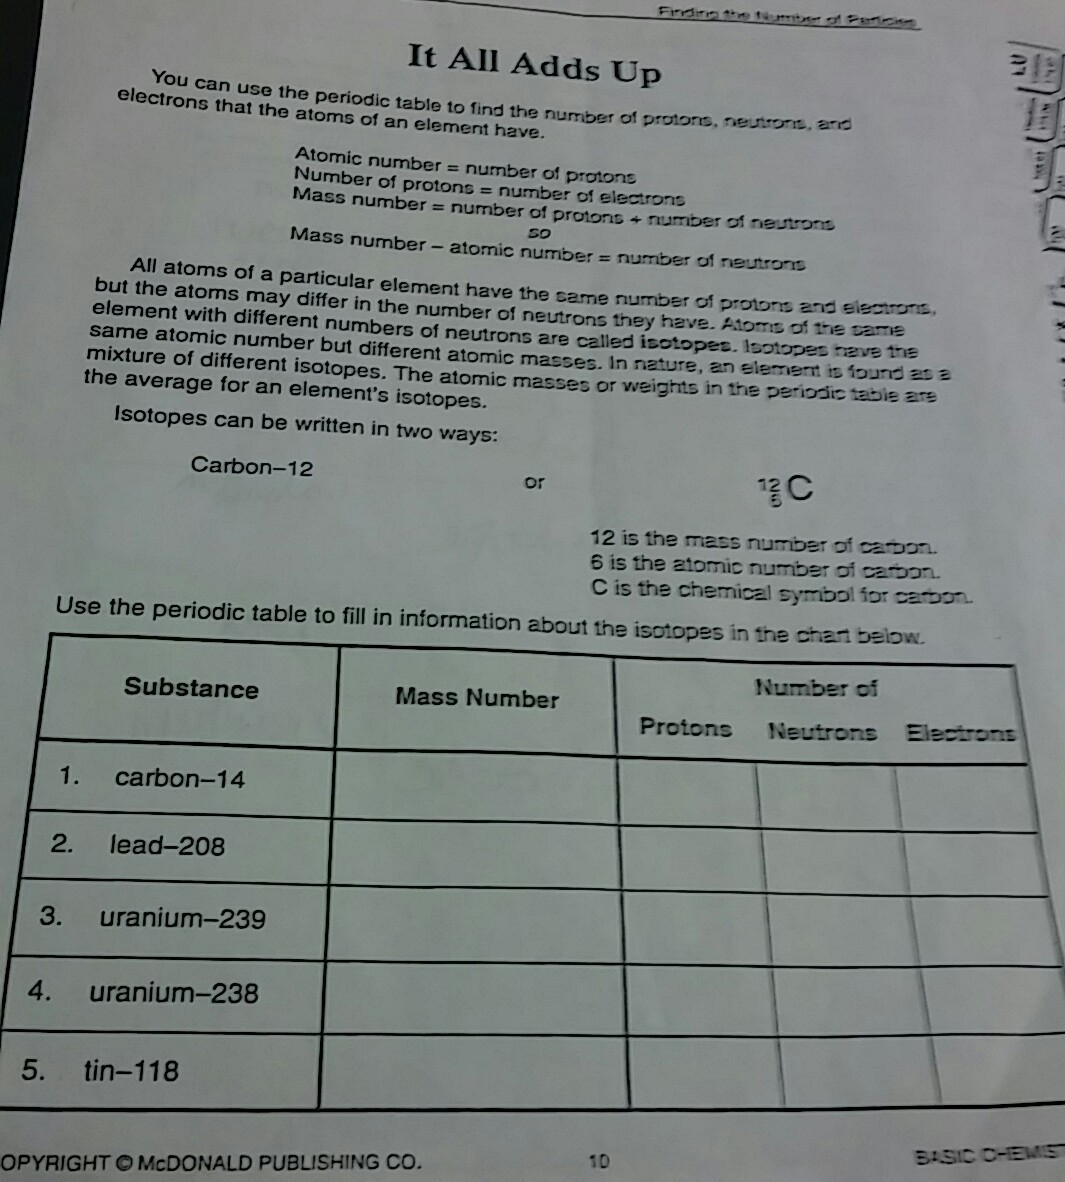 it all adds up worksheet - Brainly com